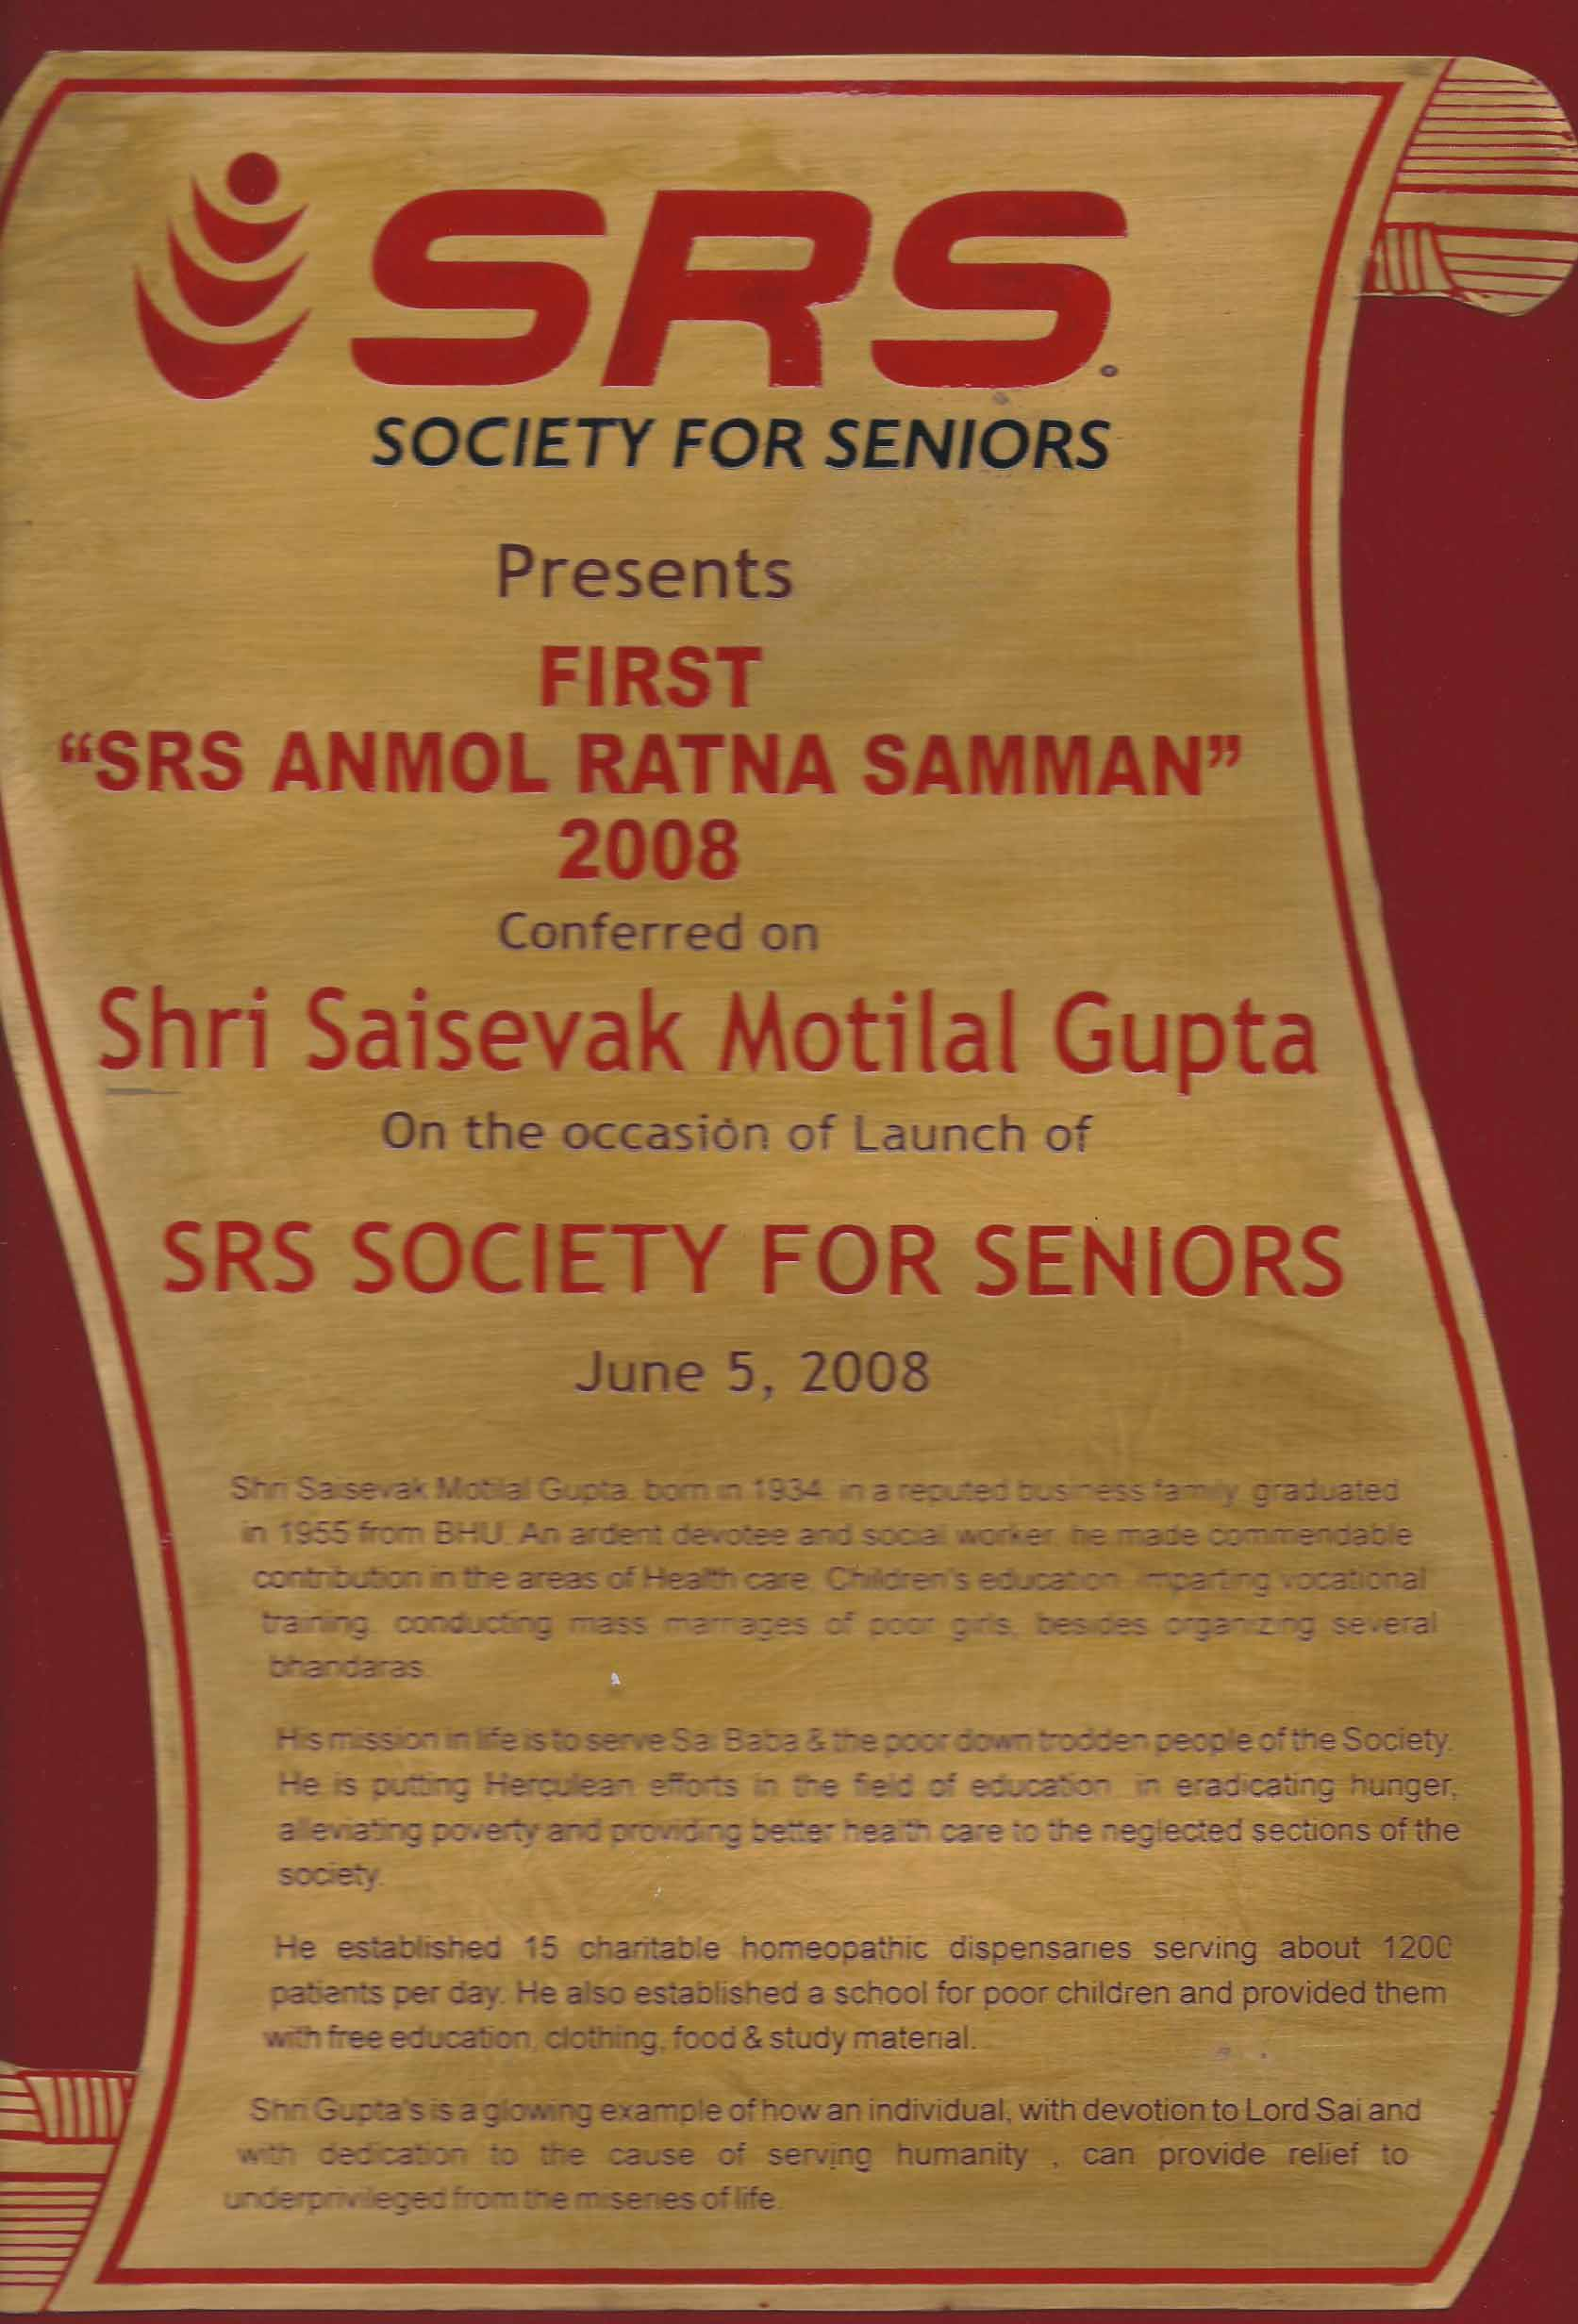 SRS society for seniors